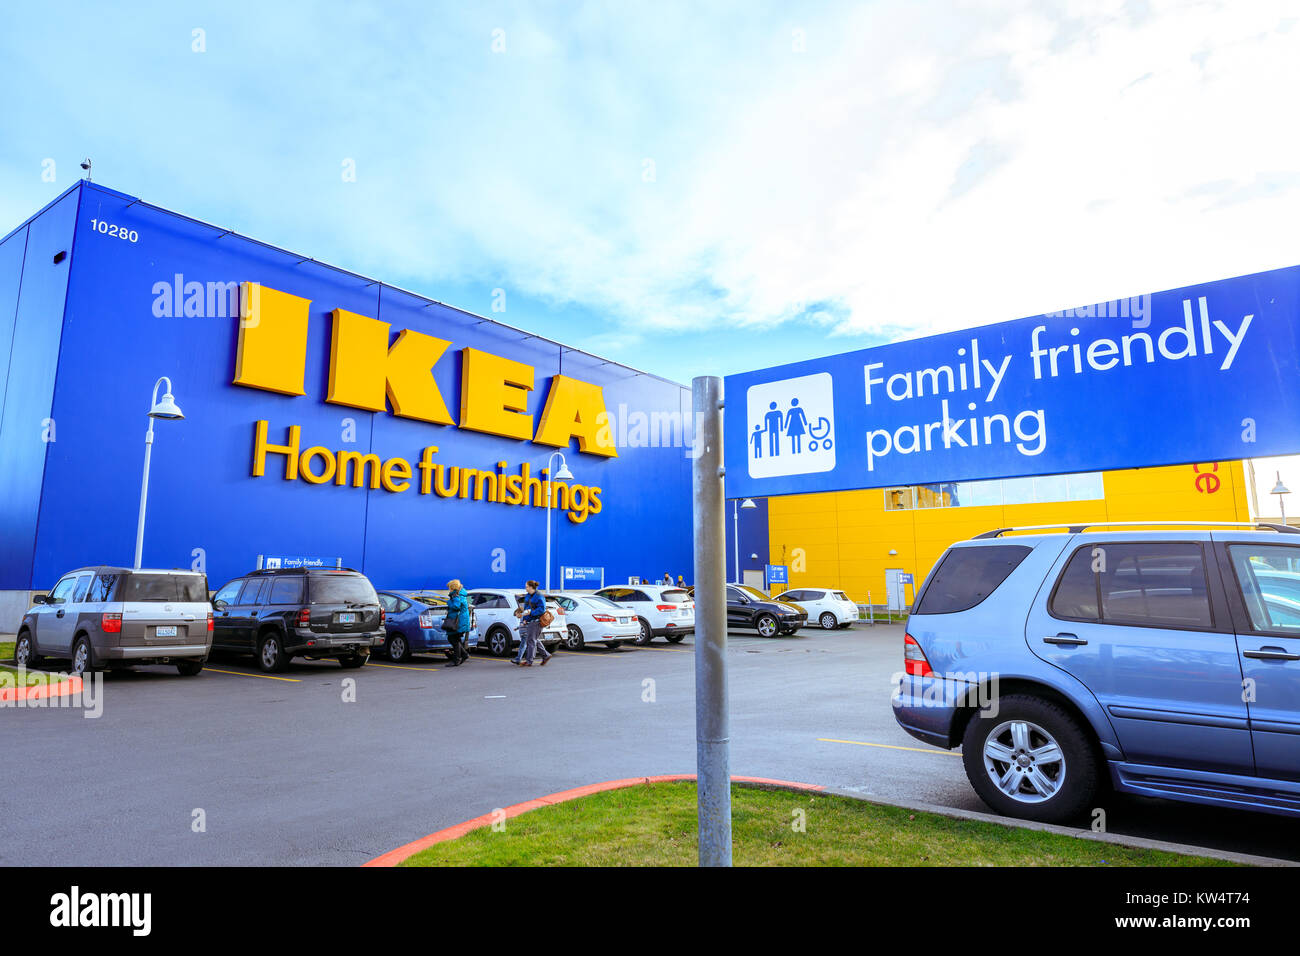 ikea store usa stock photos ikea store usa stock images alamy. Black Bedroom Furniture Sets. Home Design Ideas